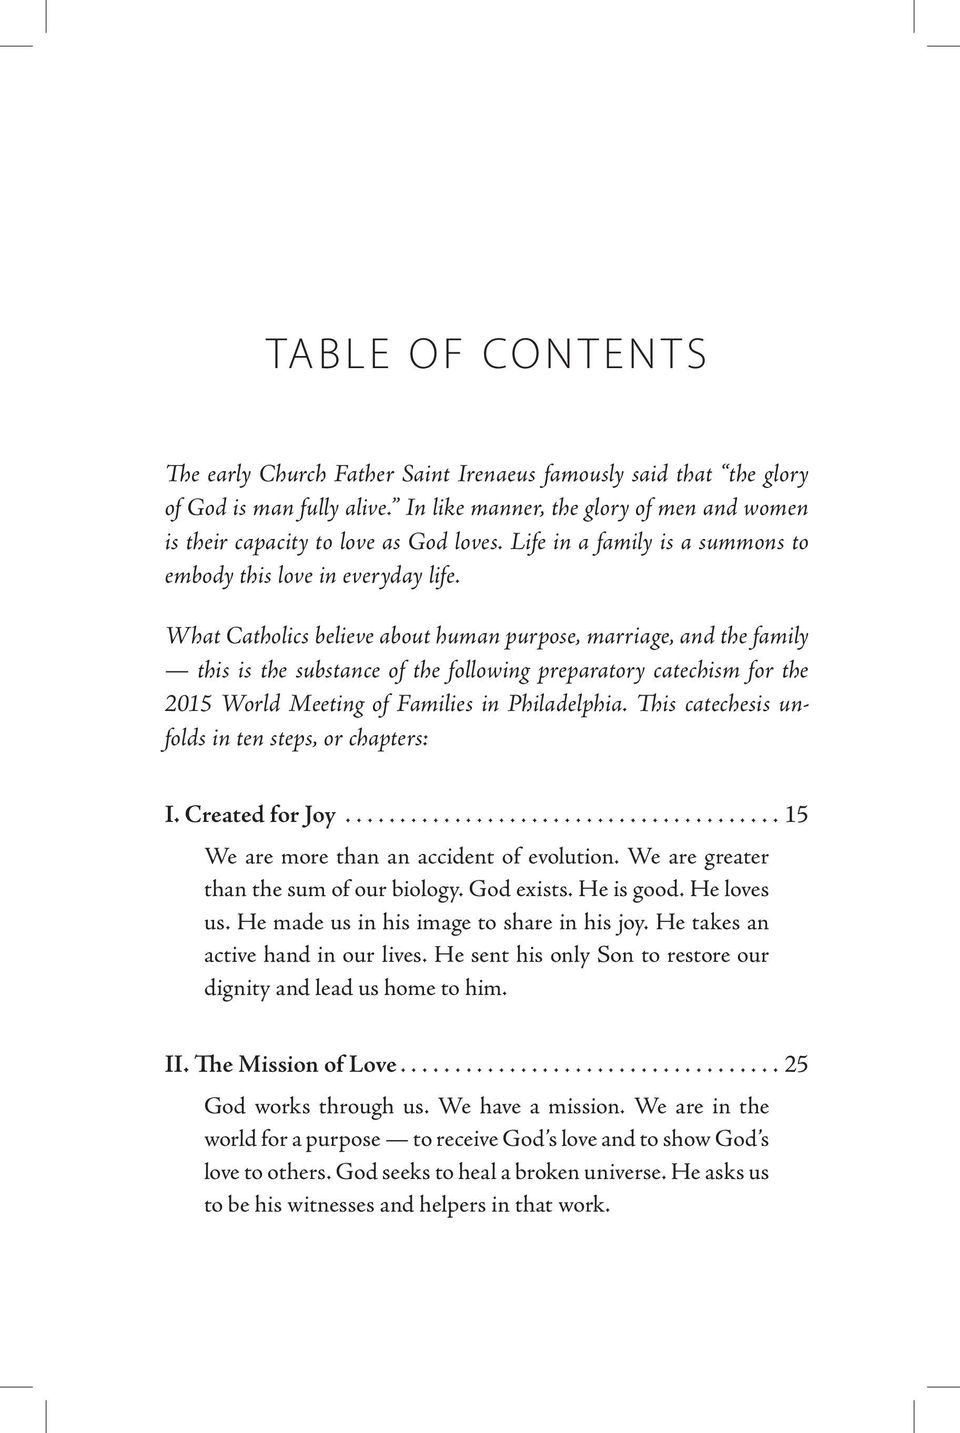 What Catholics believe about human purpose, marriage, and the family this is the substance of the following preparatory catechism for the 2015 World Meeting of Families in Philadelphia.